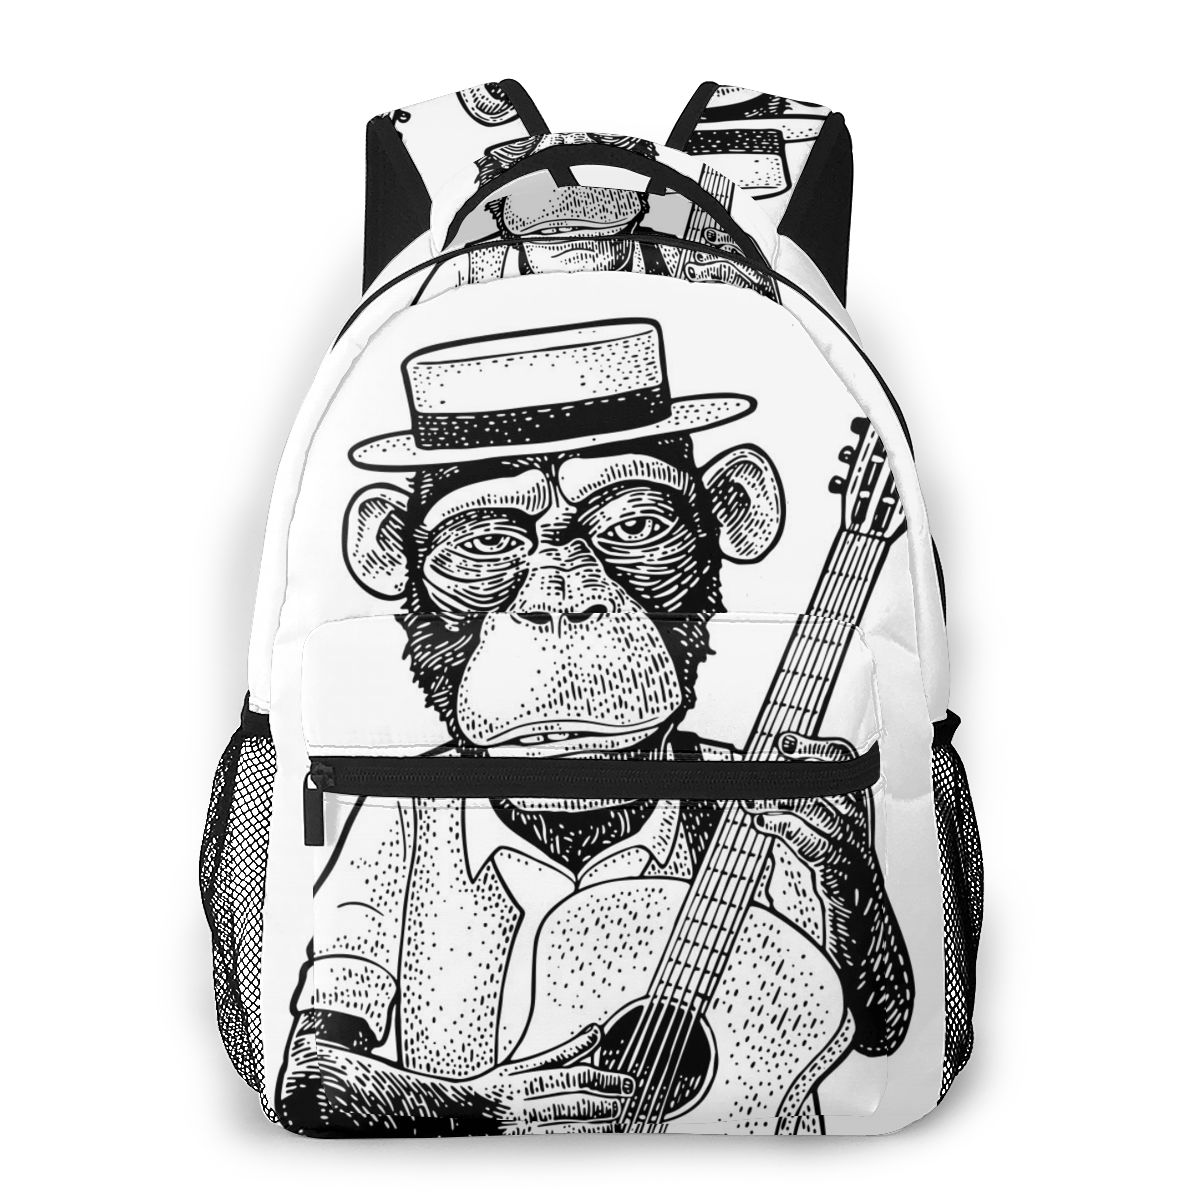 Fashion Backpack 2020 Funny Monkey Dressed Hat And Shirt Holding Guitar